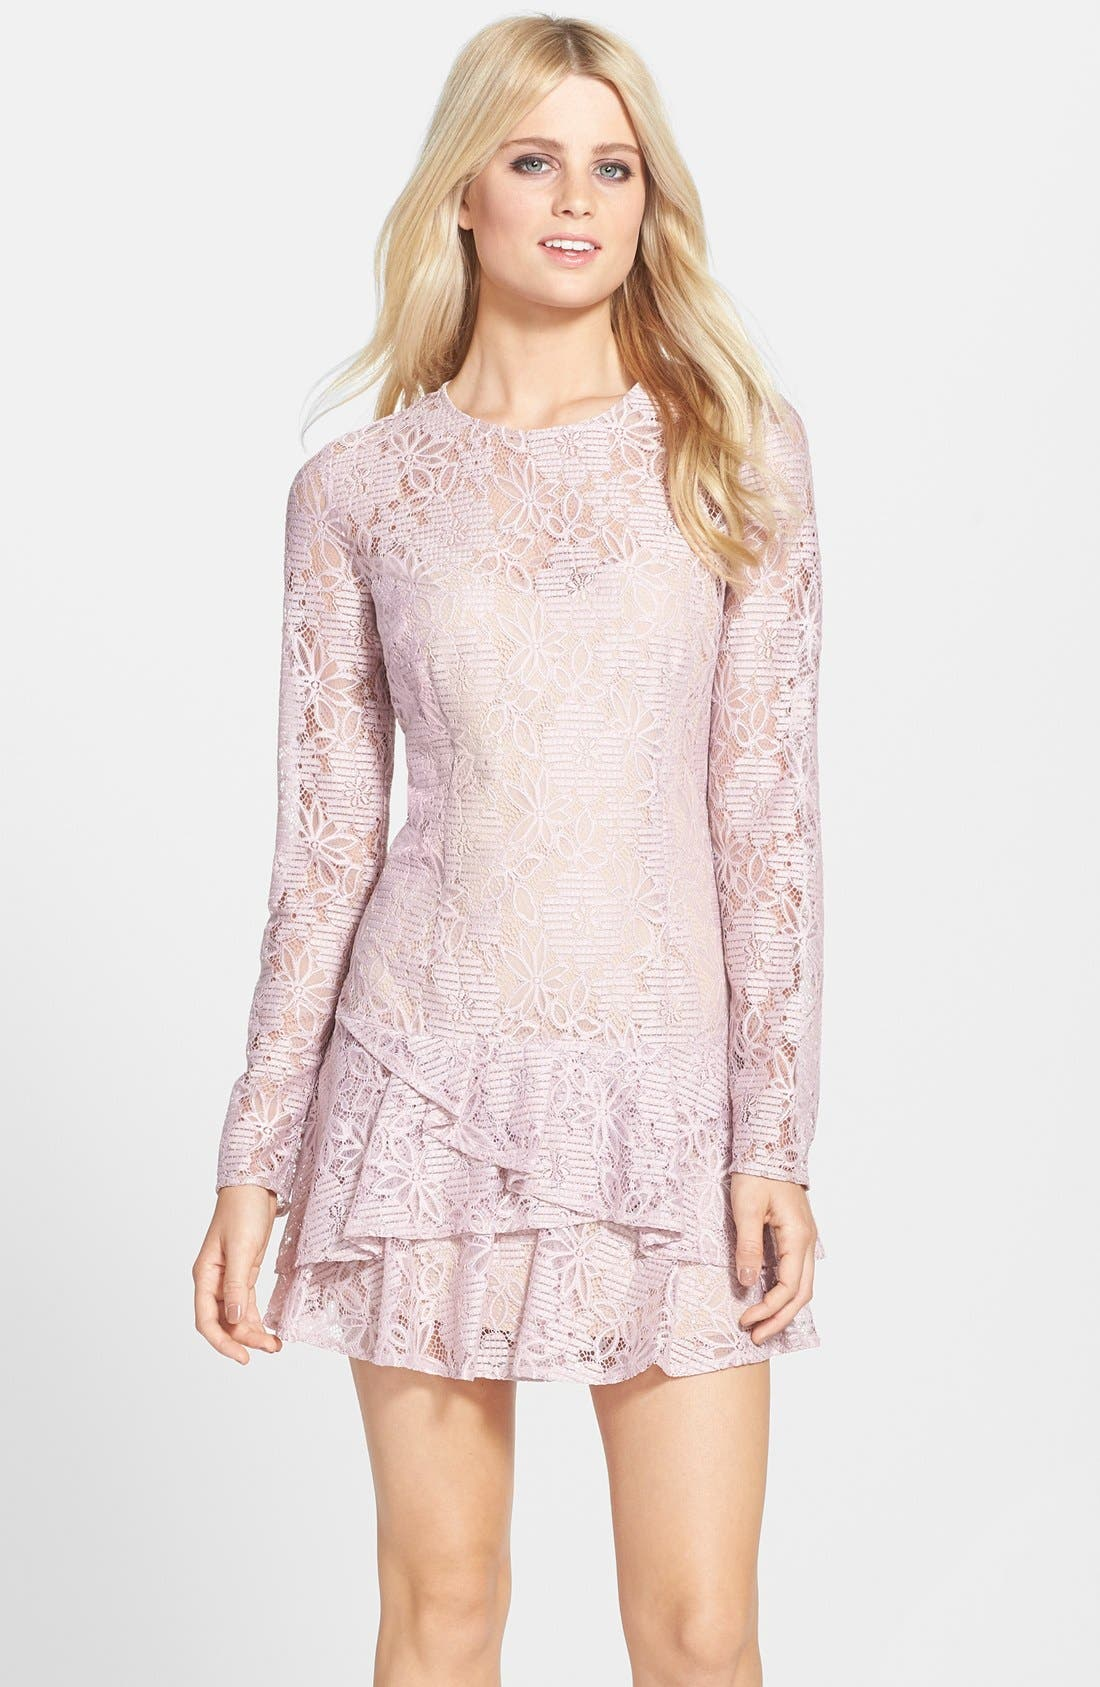 Alternate Image 1 Selected - BCBGMAXAZRIA 'Lysa' Drop Waist Lace Dress